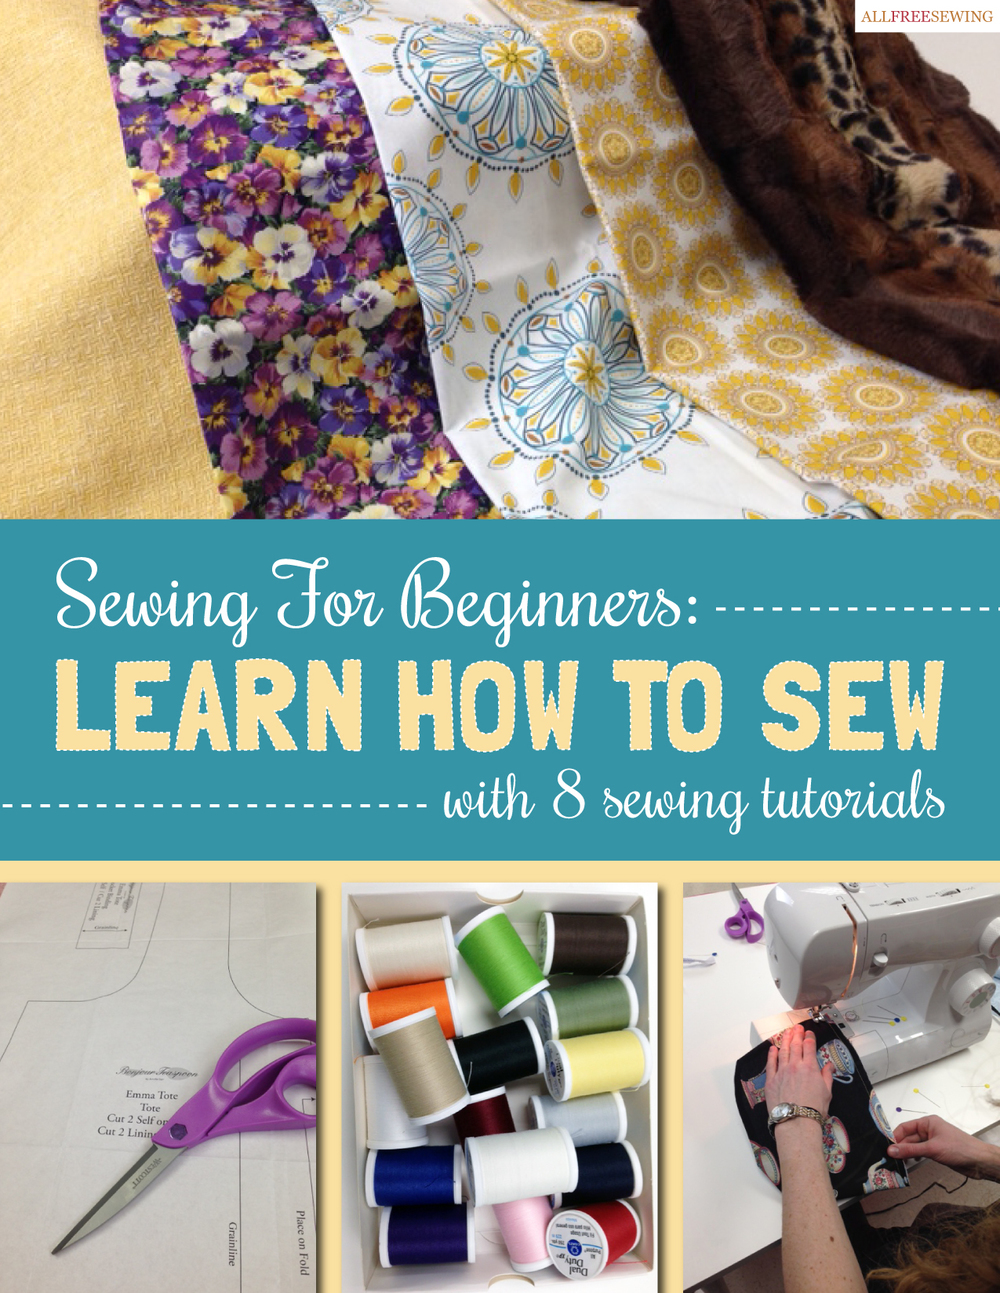 Sewing for beginners learn how to sew with 8 sewing tutorials sewing for beginners learn how to sew with 8 sewing tutorials allfreesewing jeuxipadfo Gallery